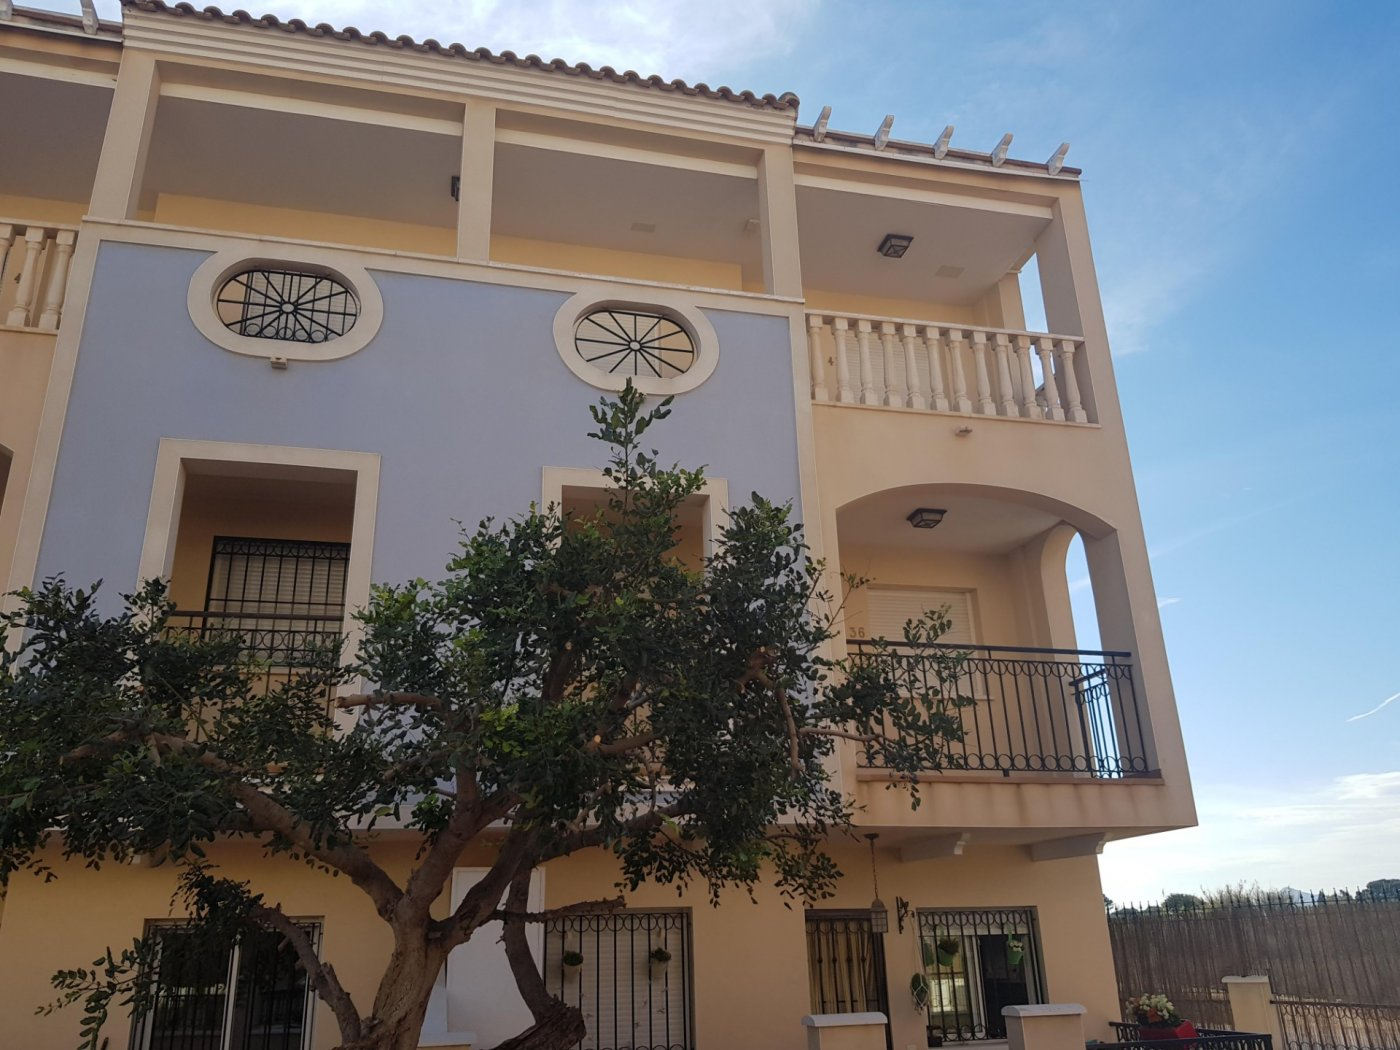 Image 2 Apartment ref 3265-03205 for sale in San Blas Spain - Quality Homes Costa Cálida